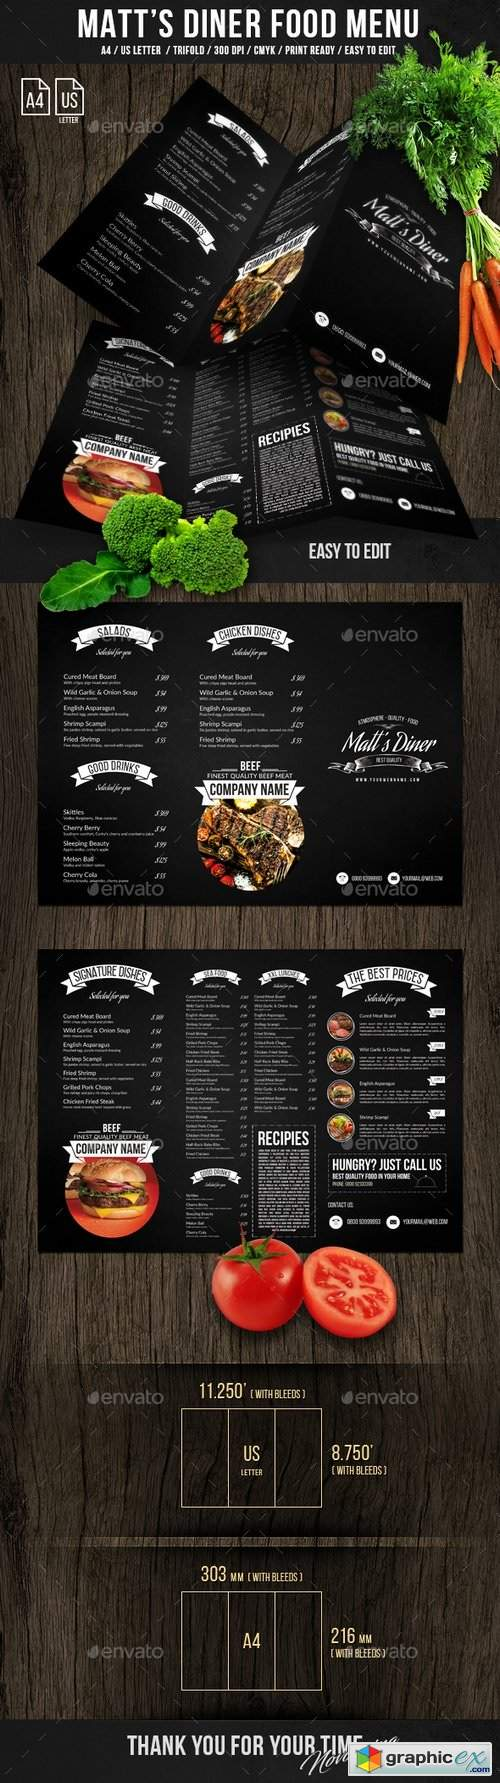 Matt's Diner Trifold A4 and US Letter Menu